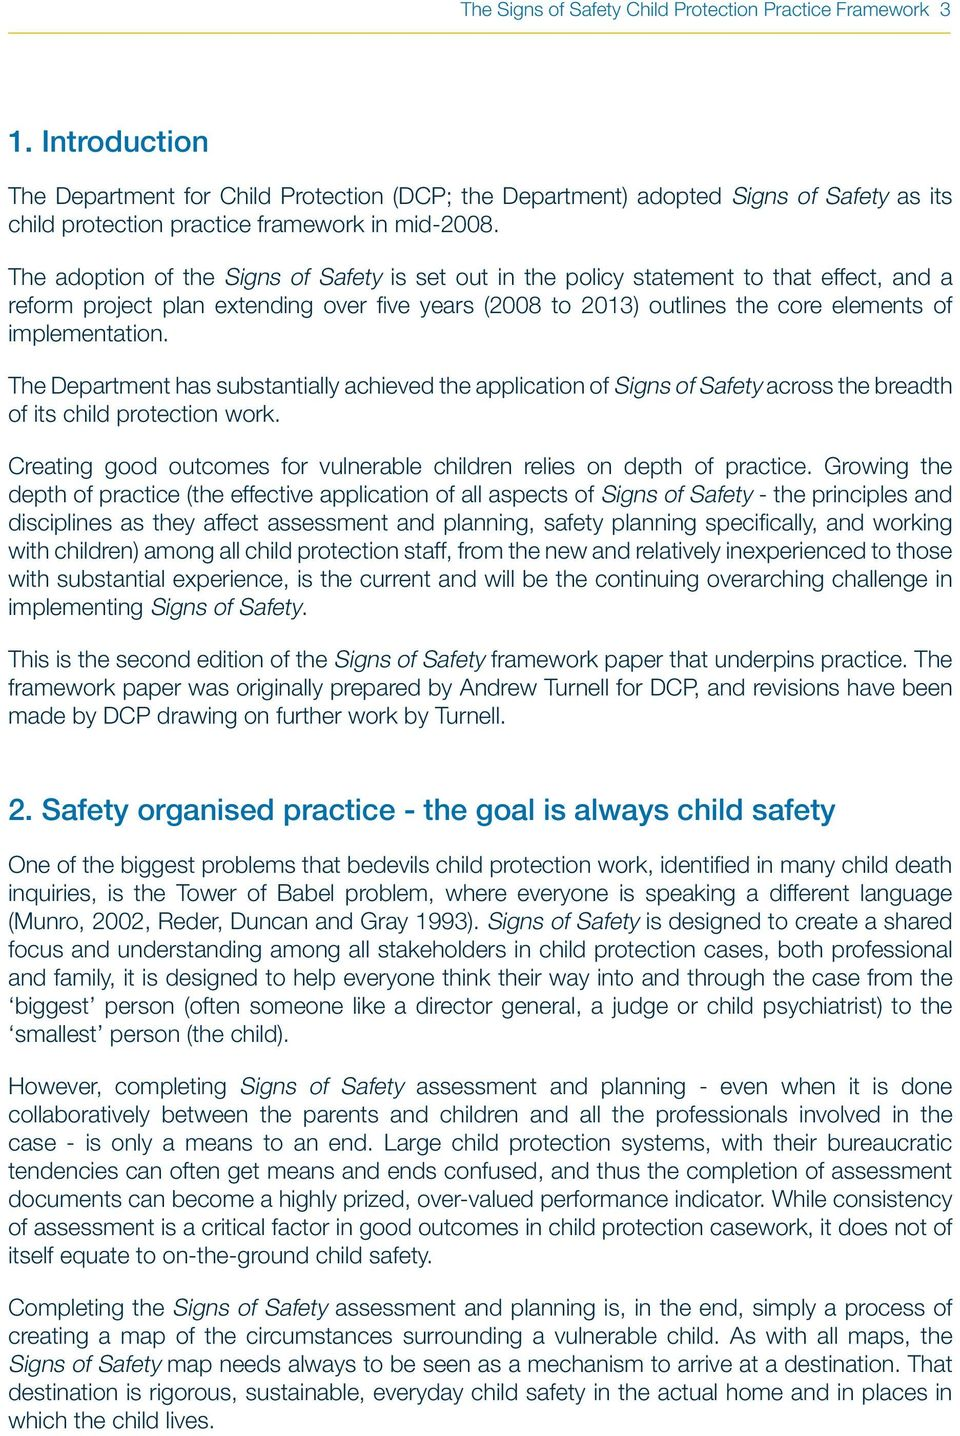 The adoption of the Signs of Safety is set out in the policy statement to that effect, and a reform project plan extending over five years (2008 to 2013) outlines the core elements of implementation.